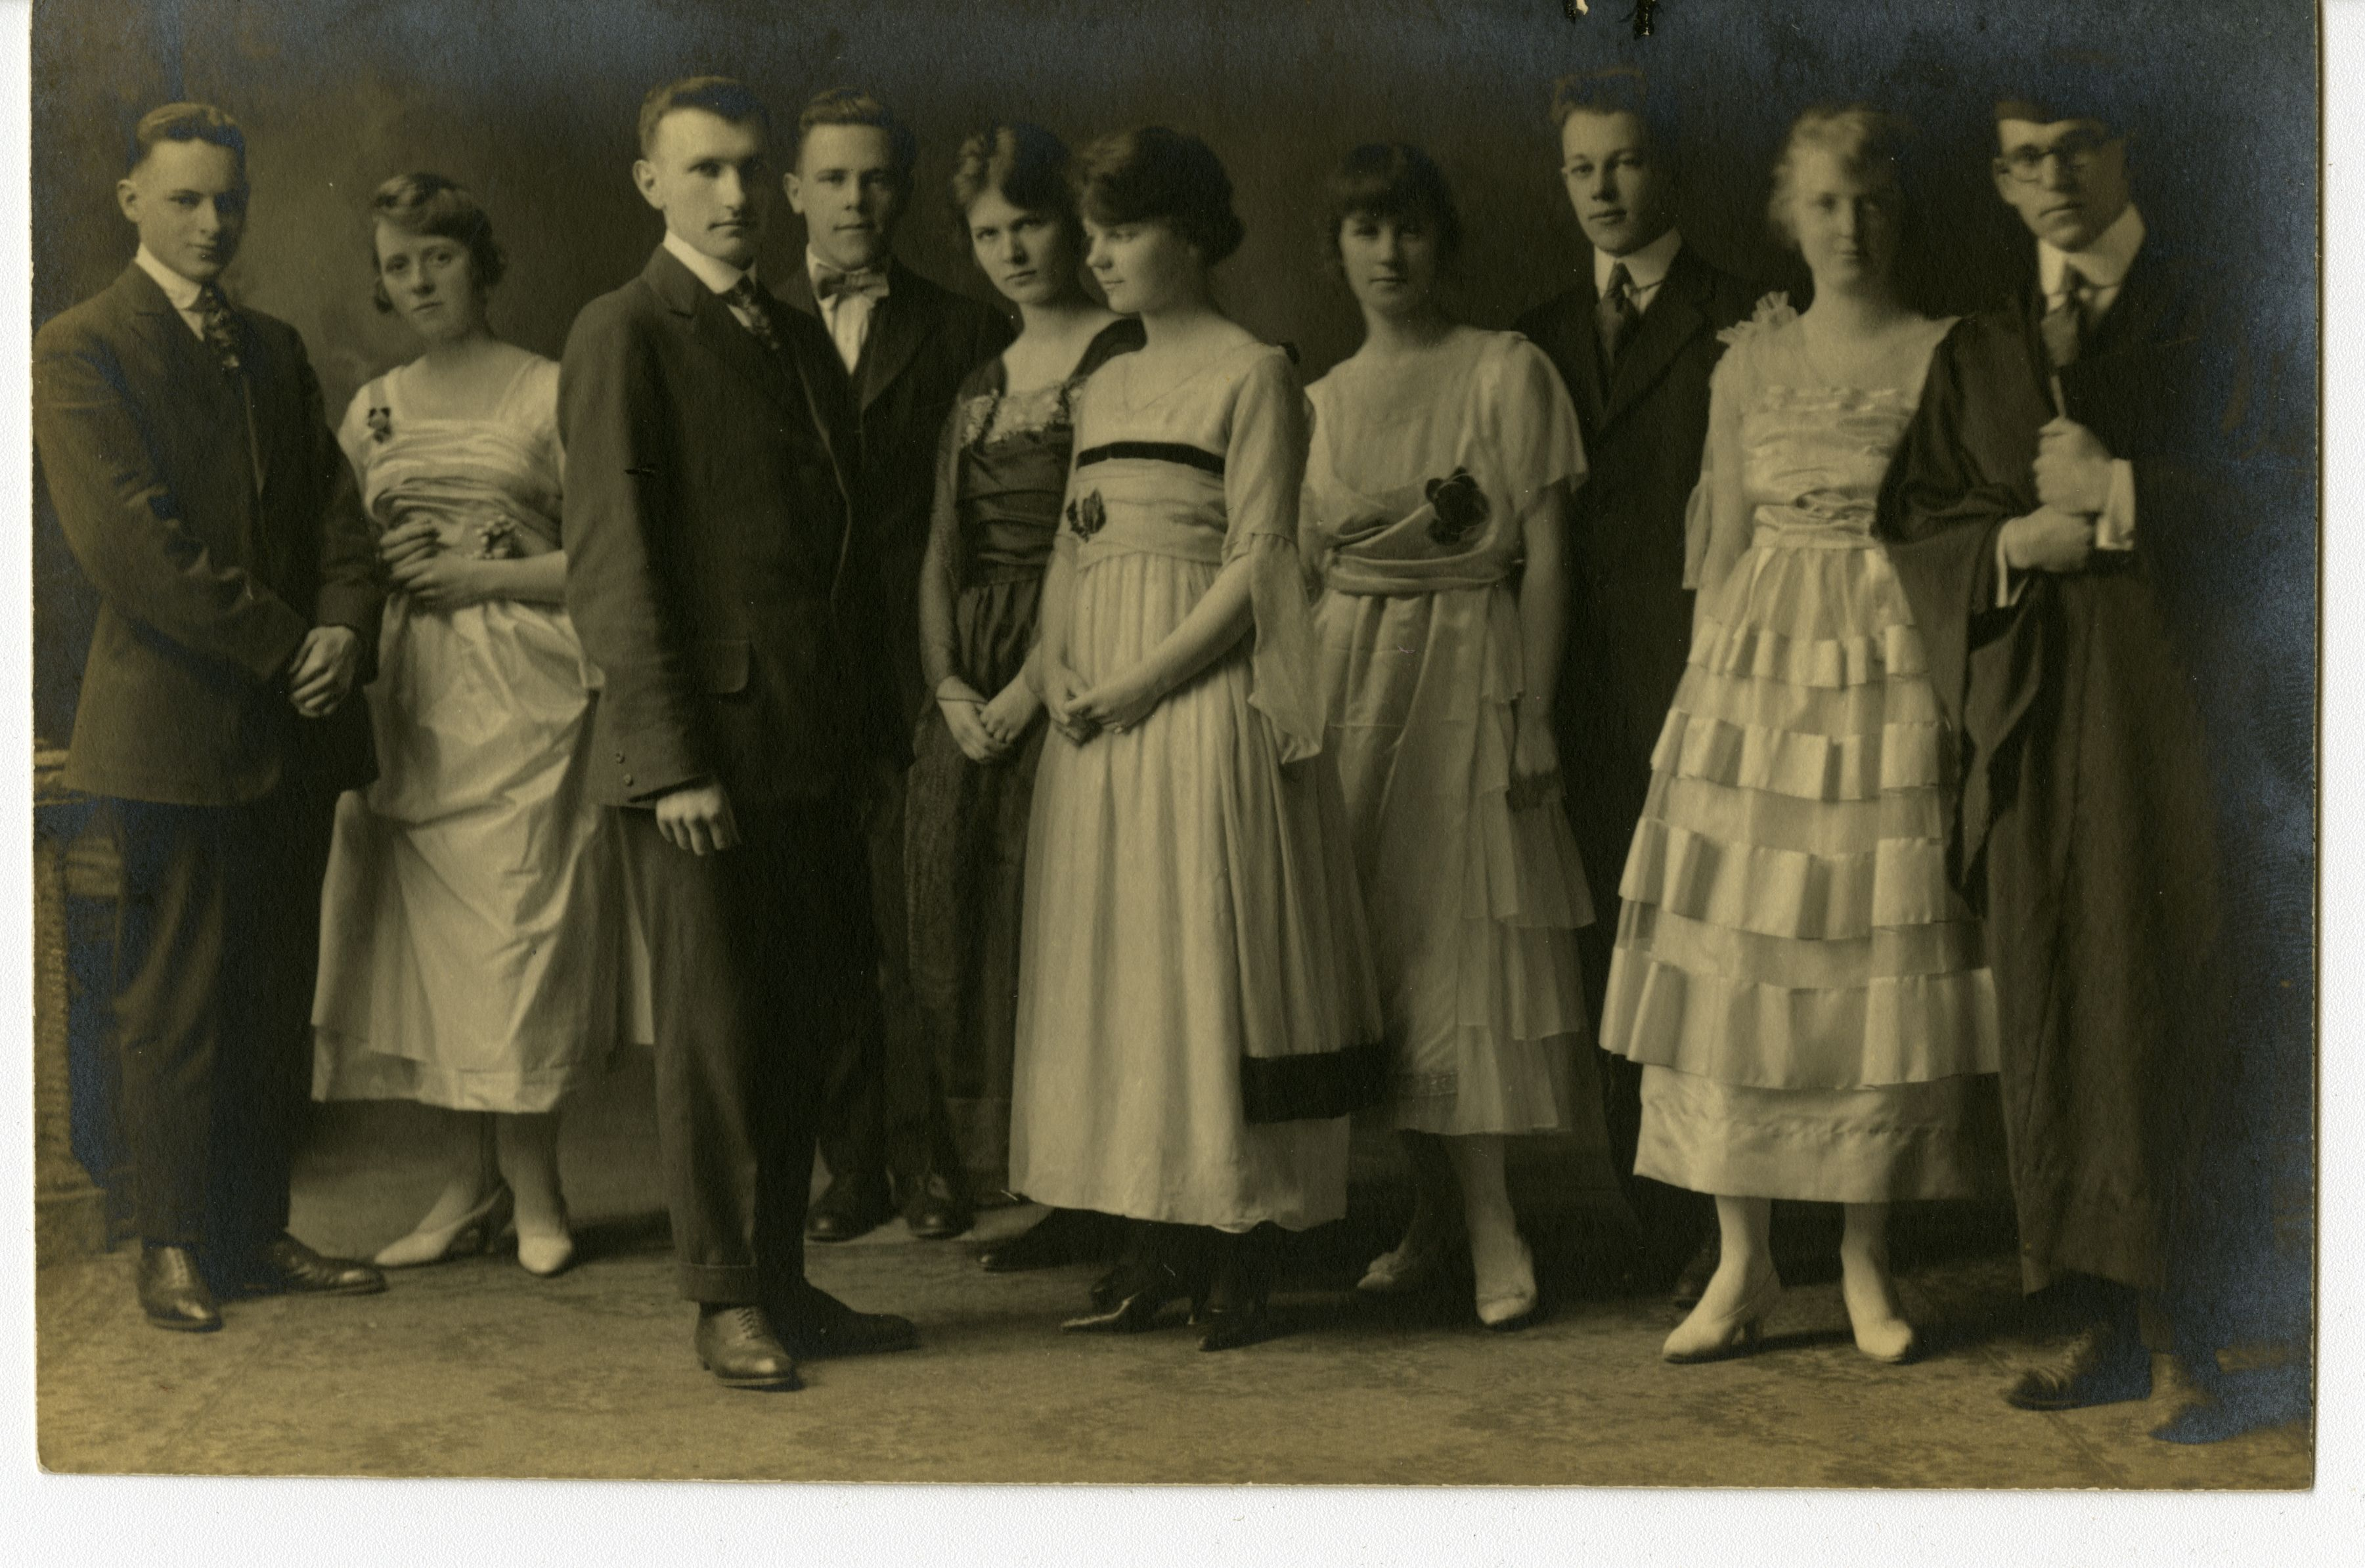 A group of 10 men and women standing together in costumes. The men wear suits while the women wear evening dresses typical of the time period.